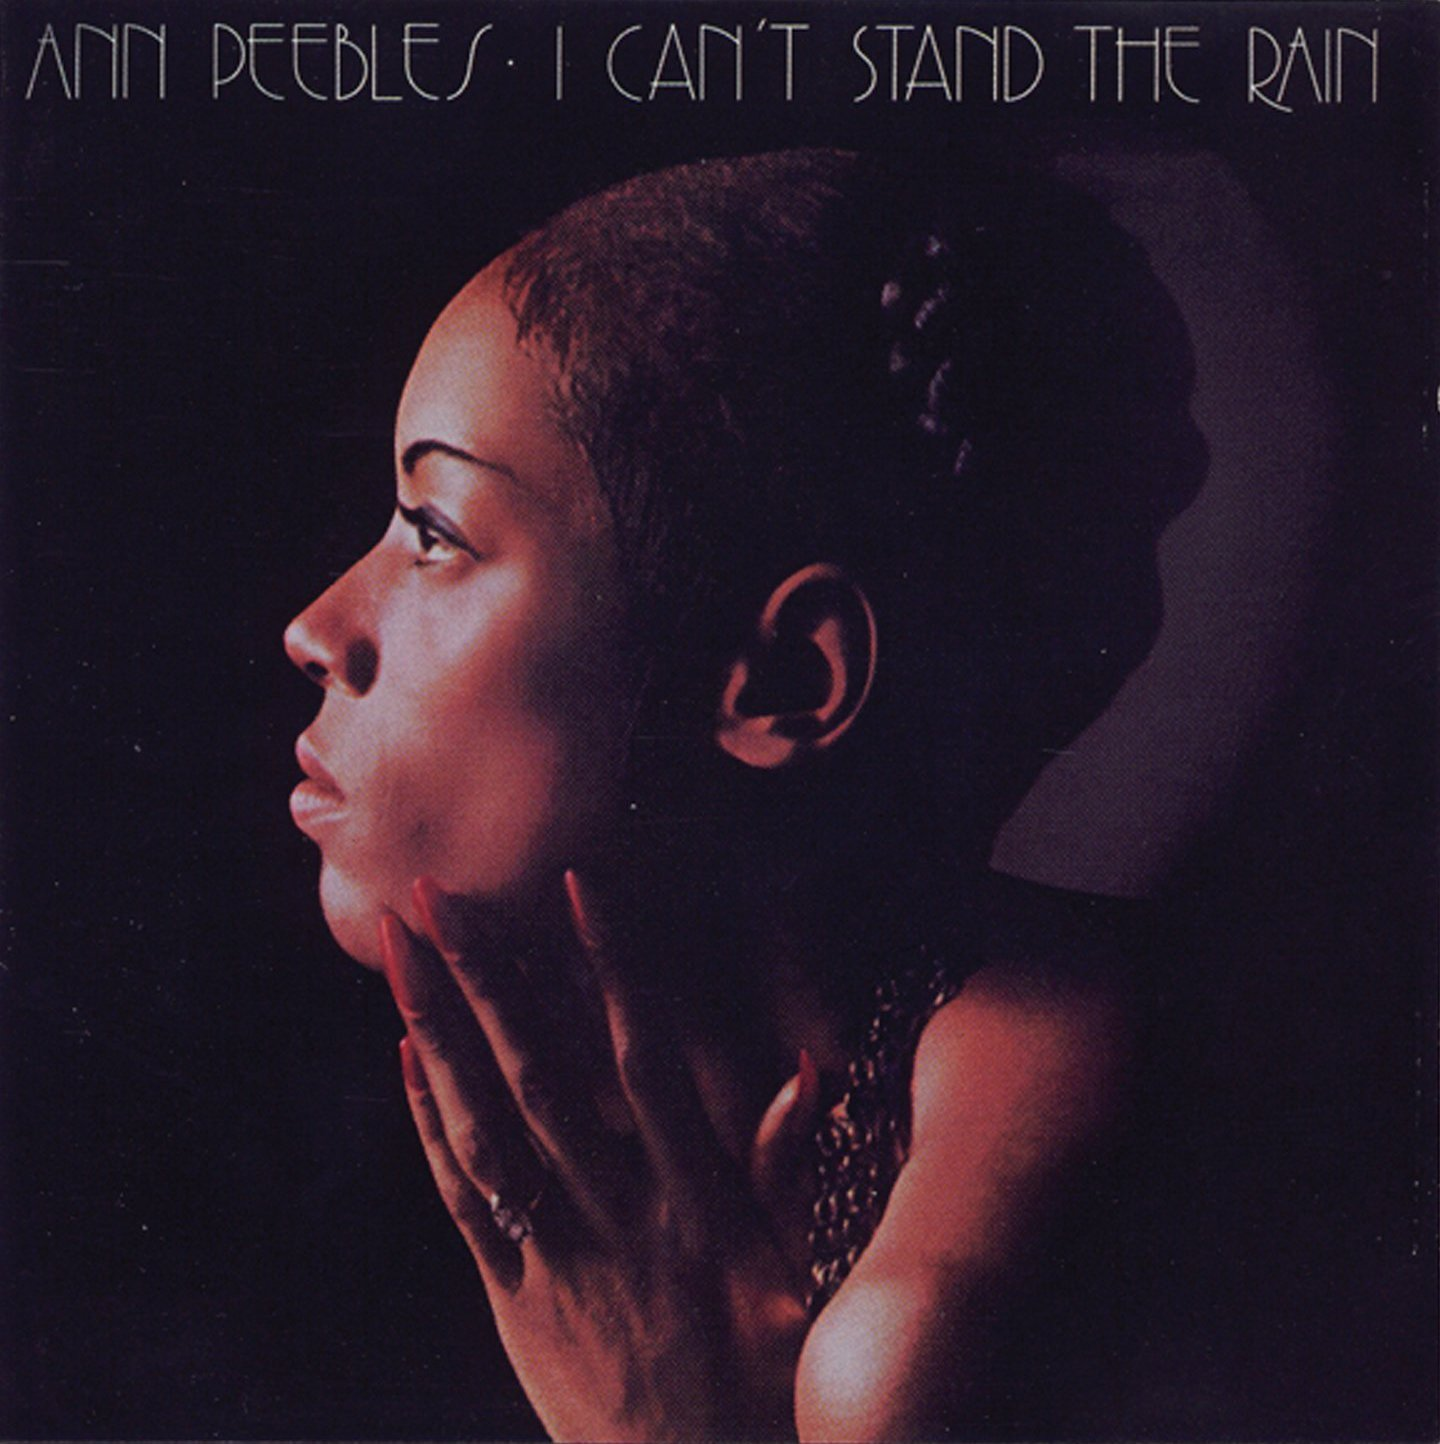 I Can't Stand The Rain by Peebles, Ann